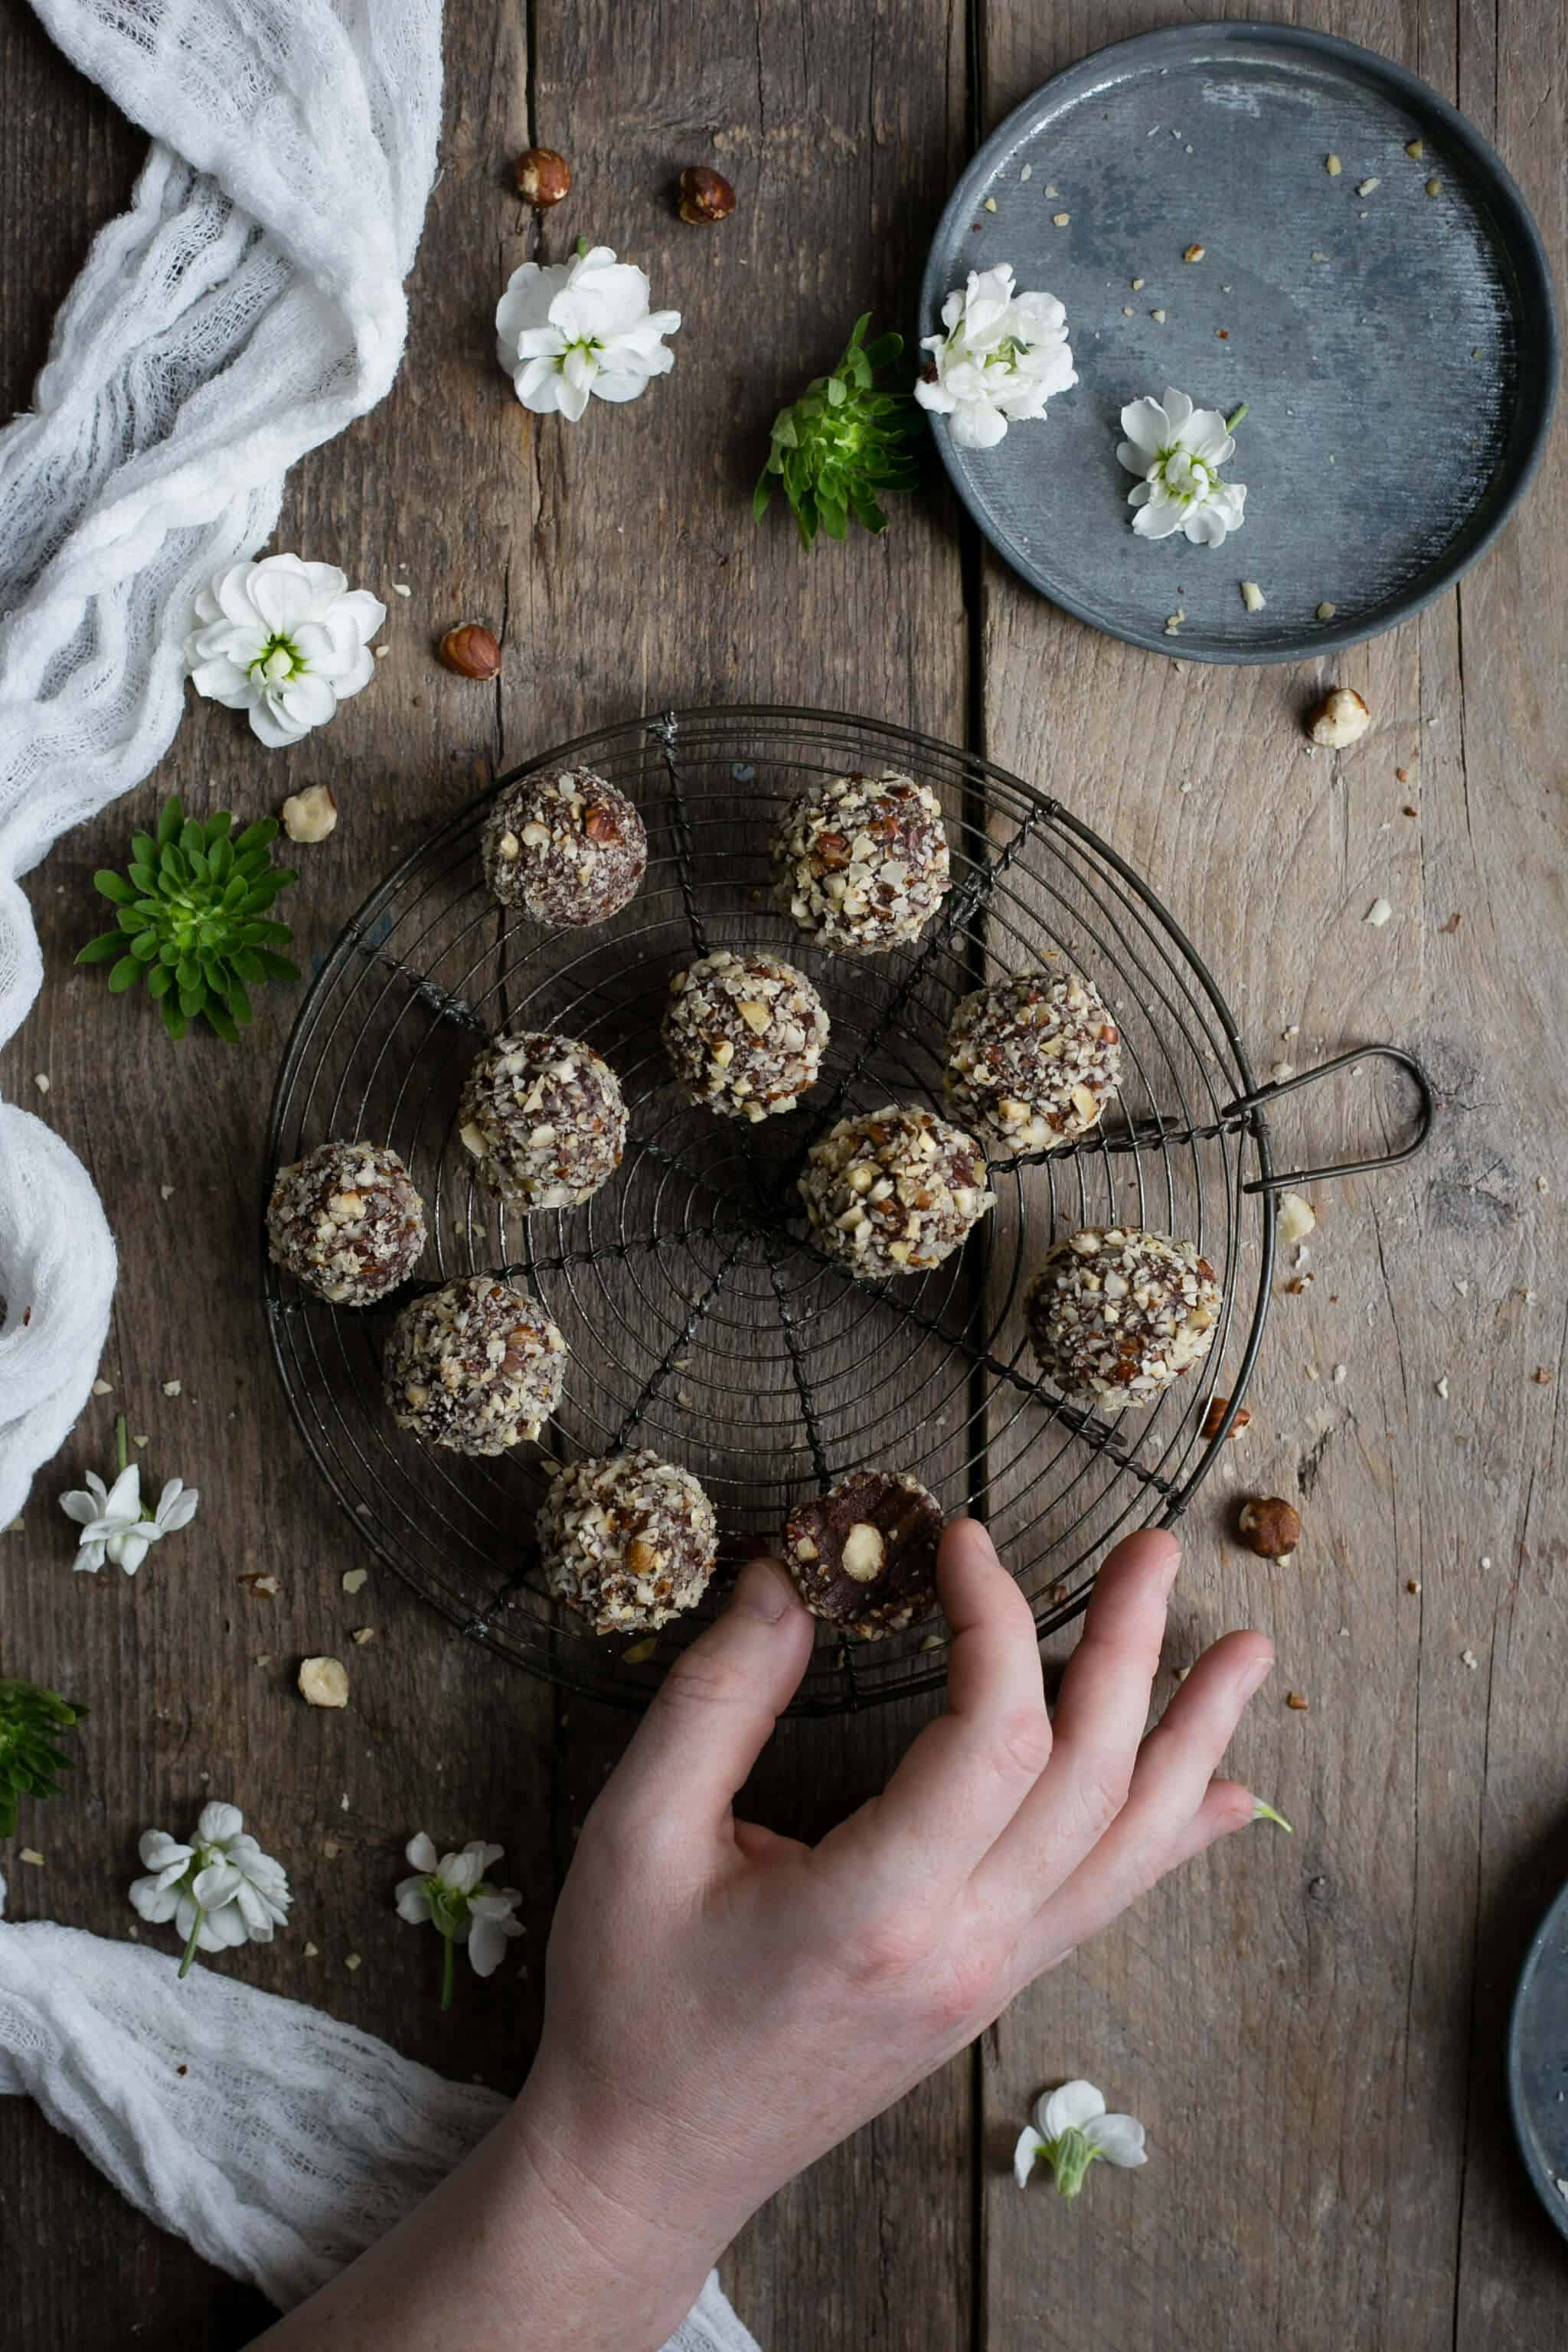 Delicious vegan Ferrero Rocher truffles | via @annabanana.co